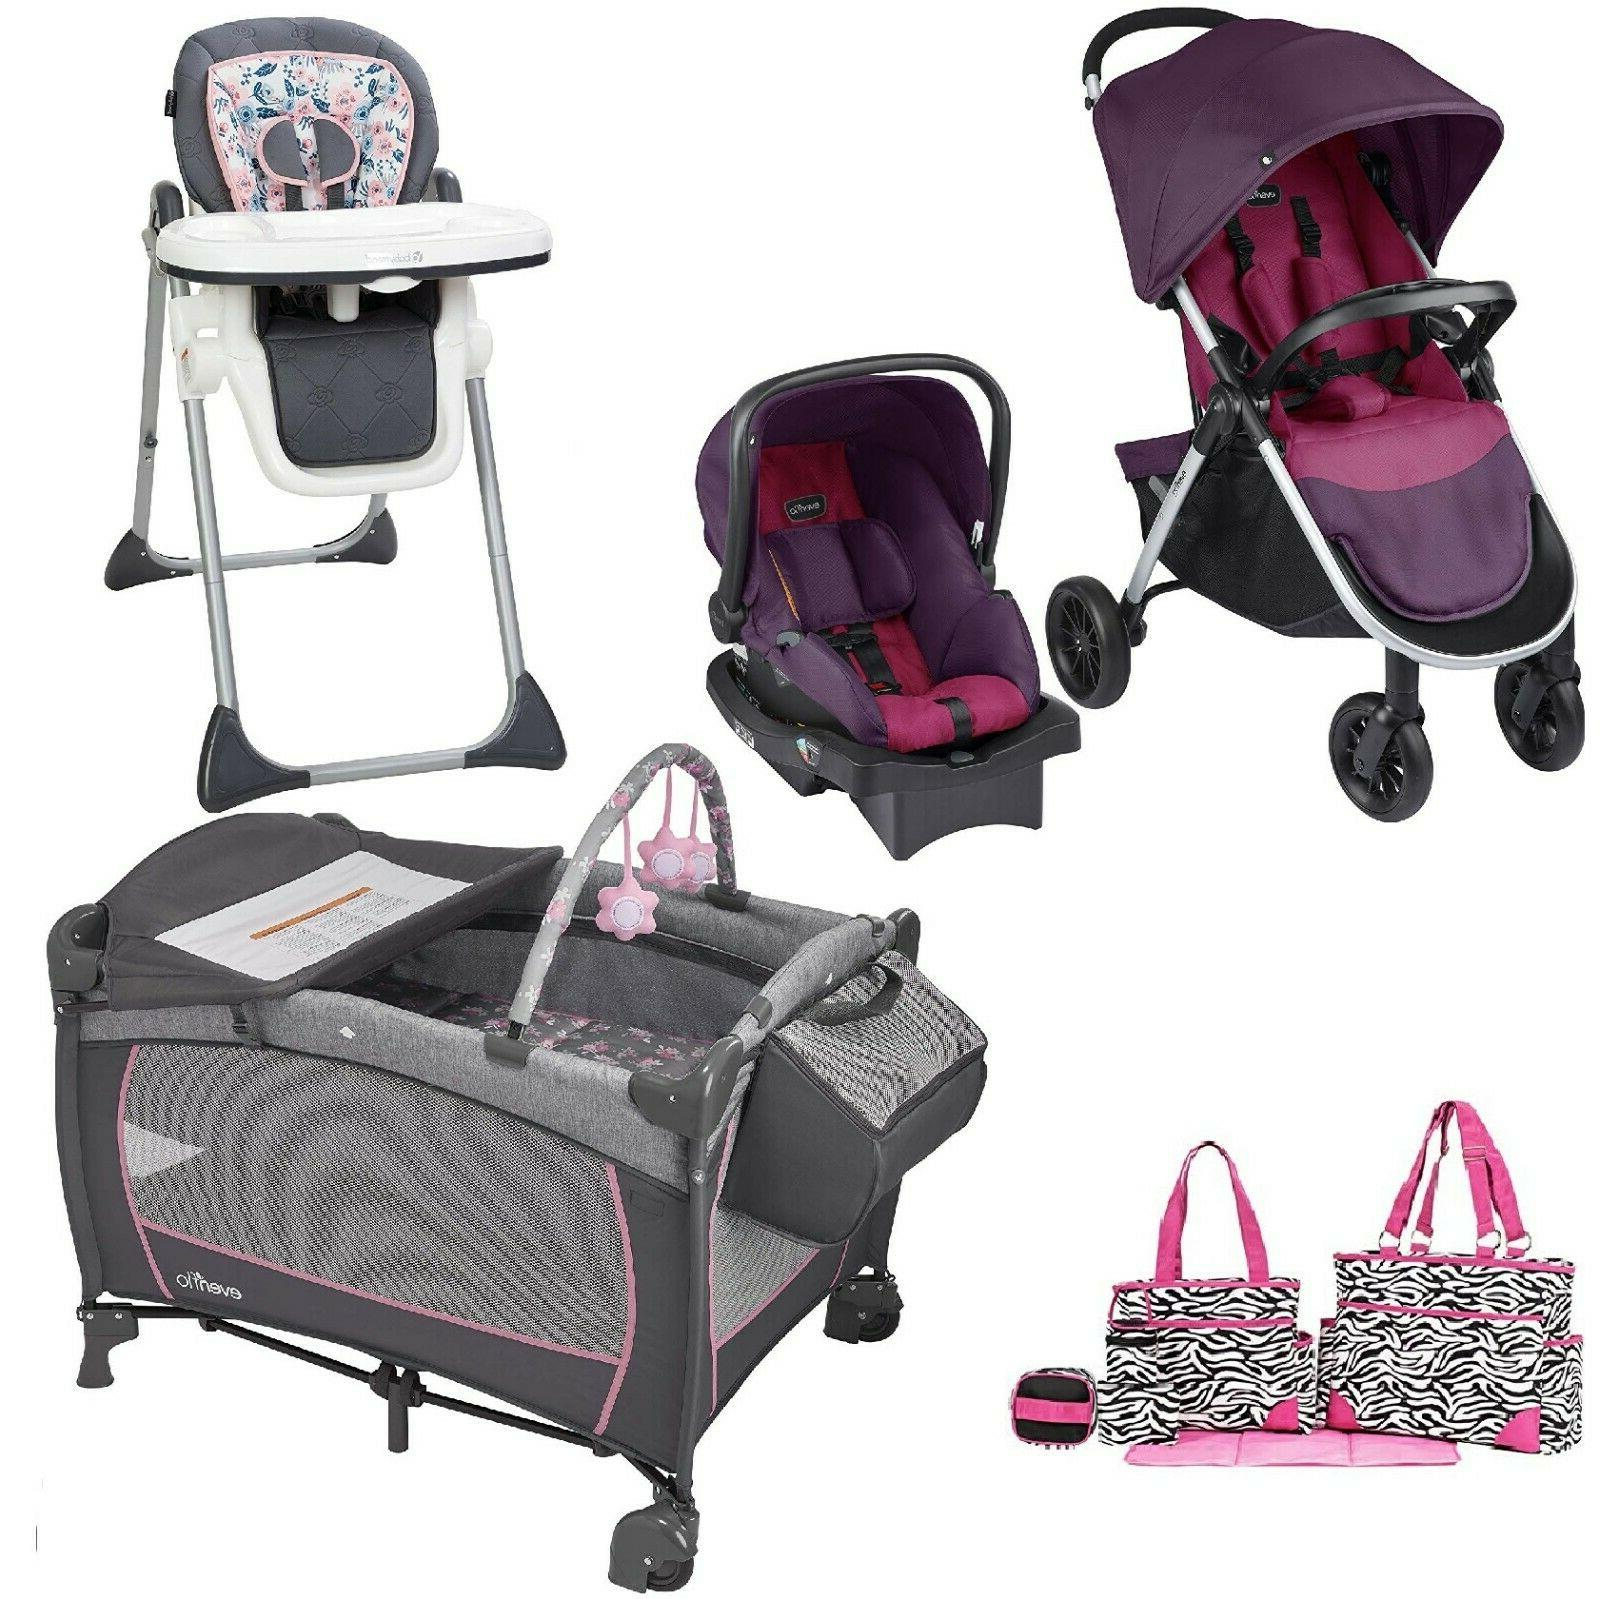 Toddler Combo Set Playard Diaper Bag High Chair Stroller Car